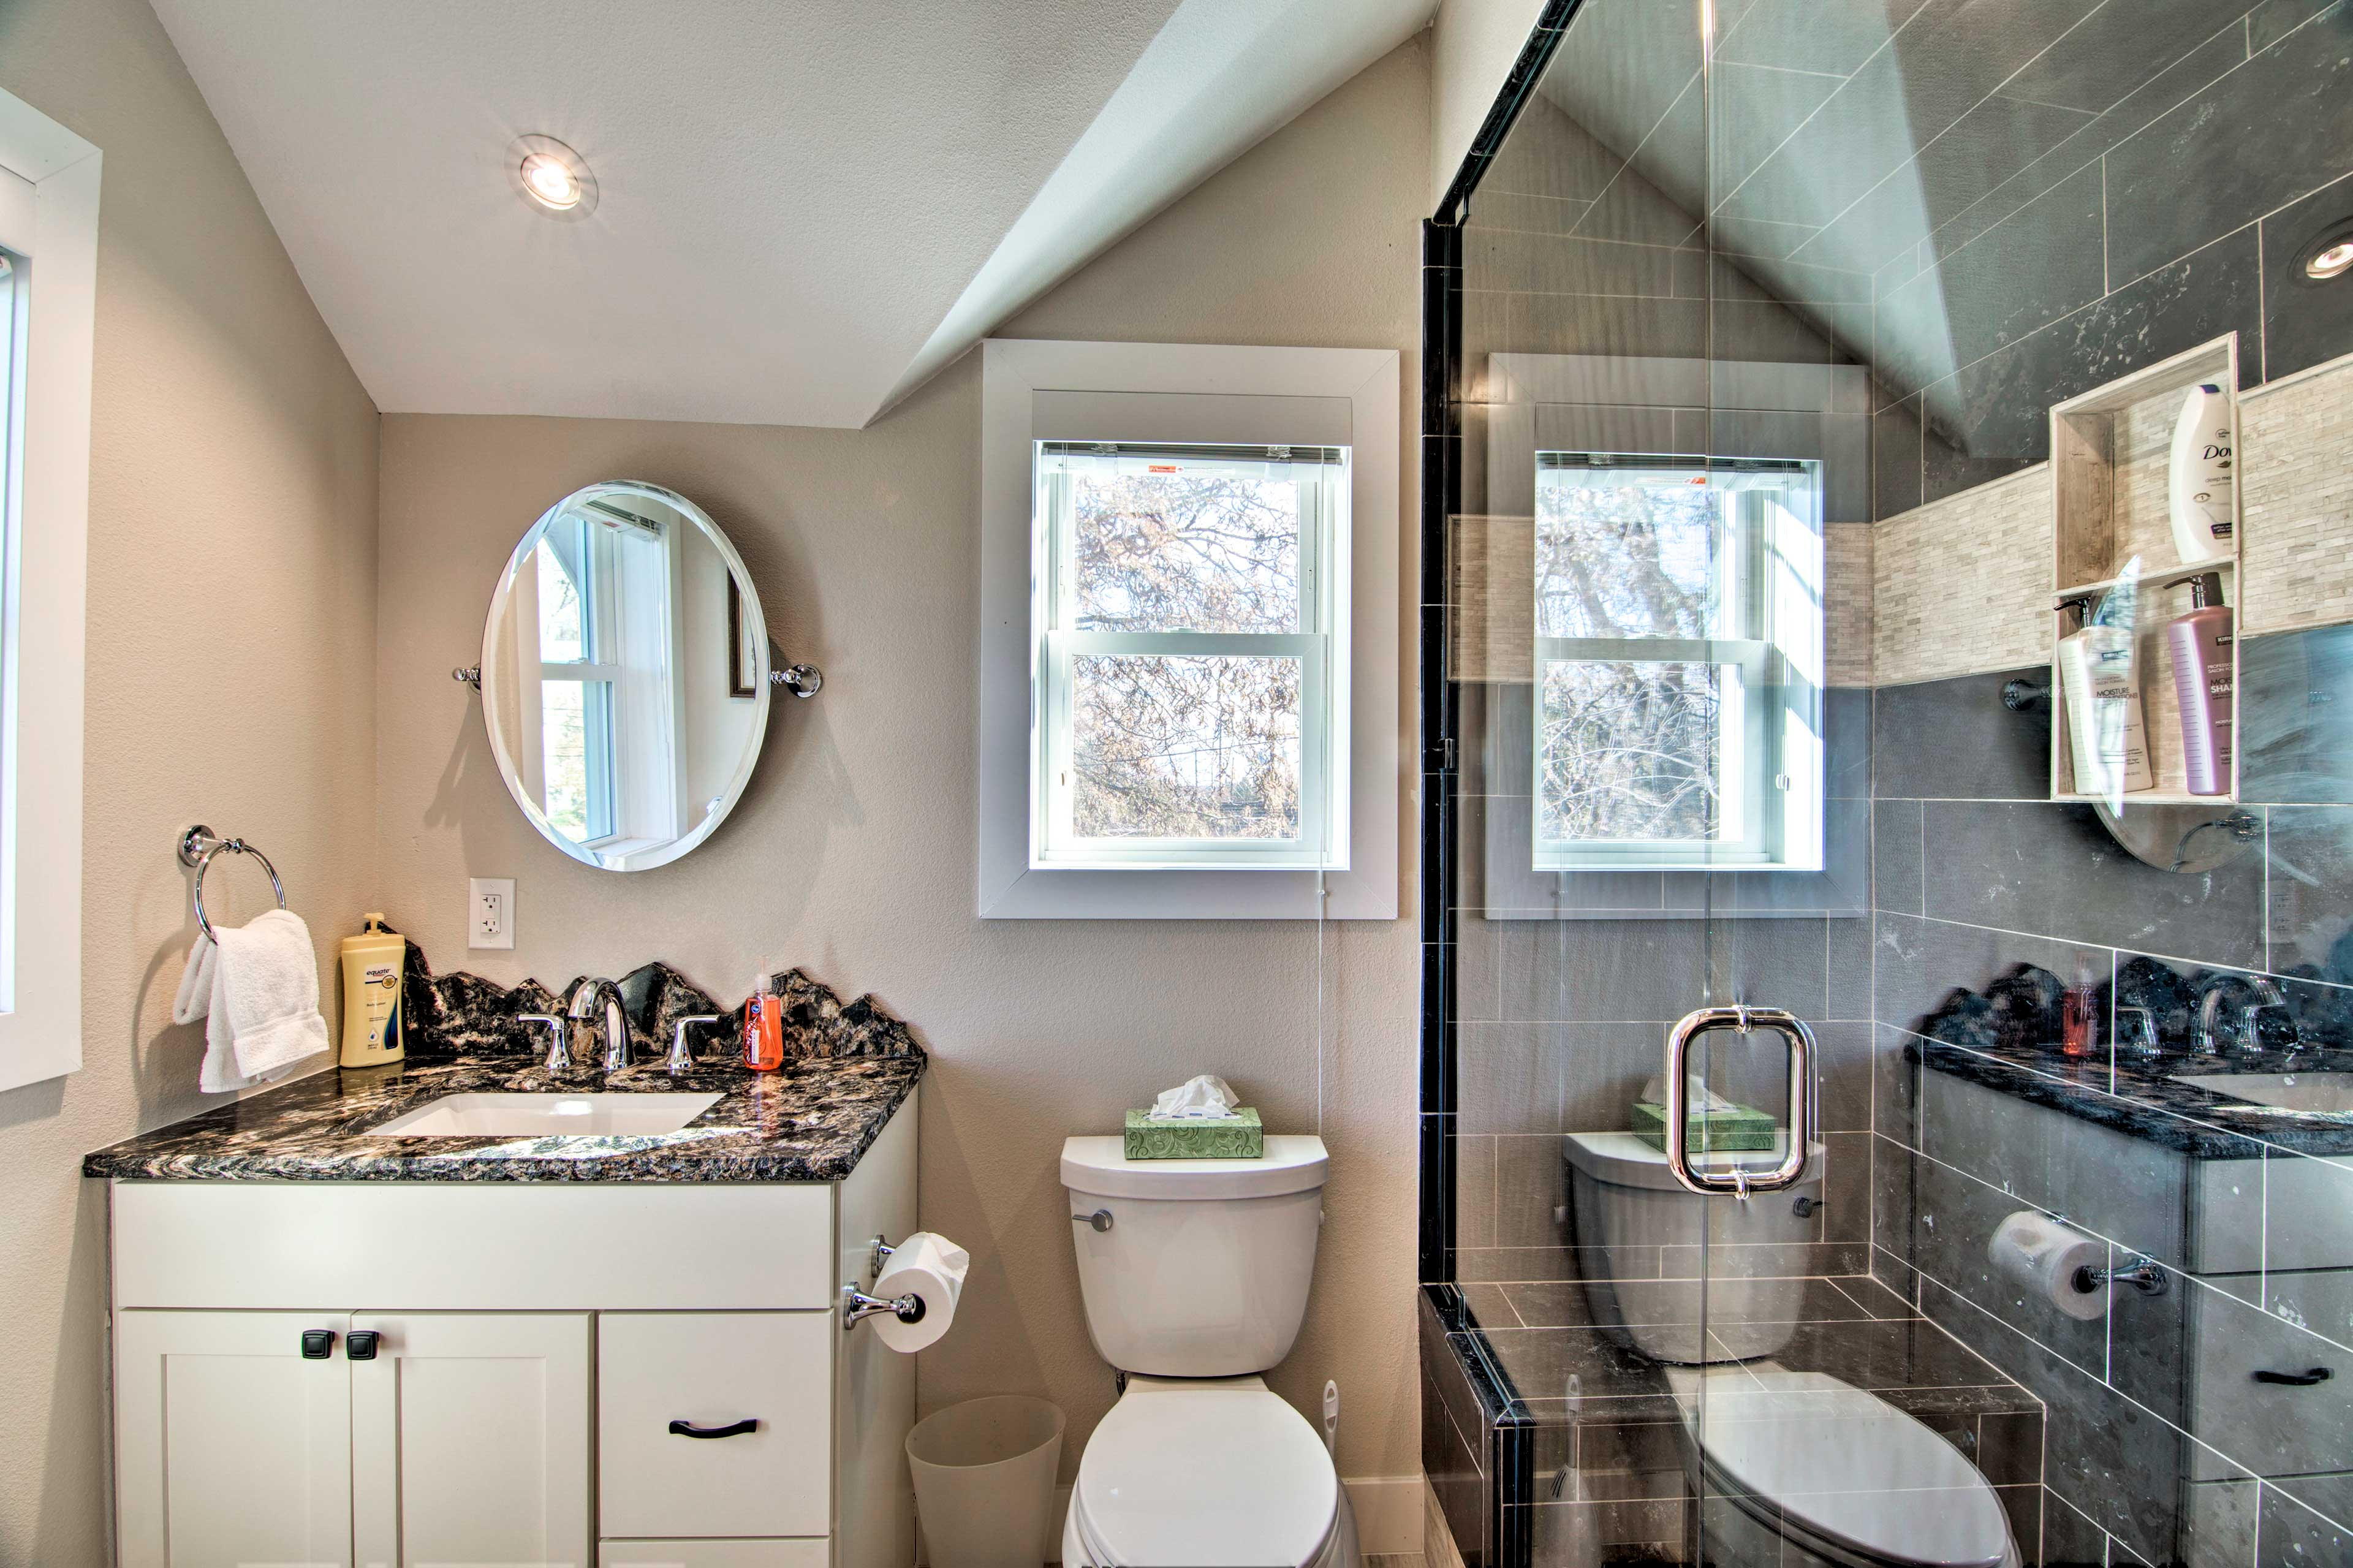 The bathroom houses a large walk-in shower.